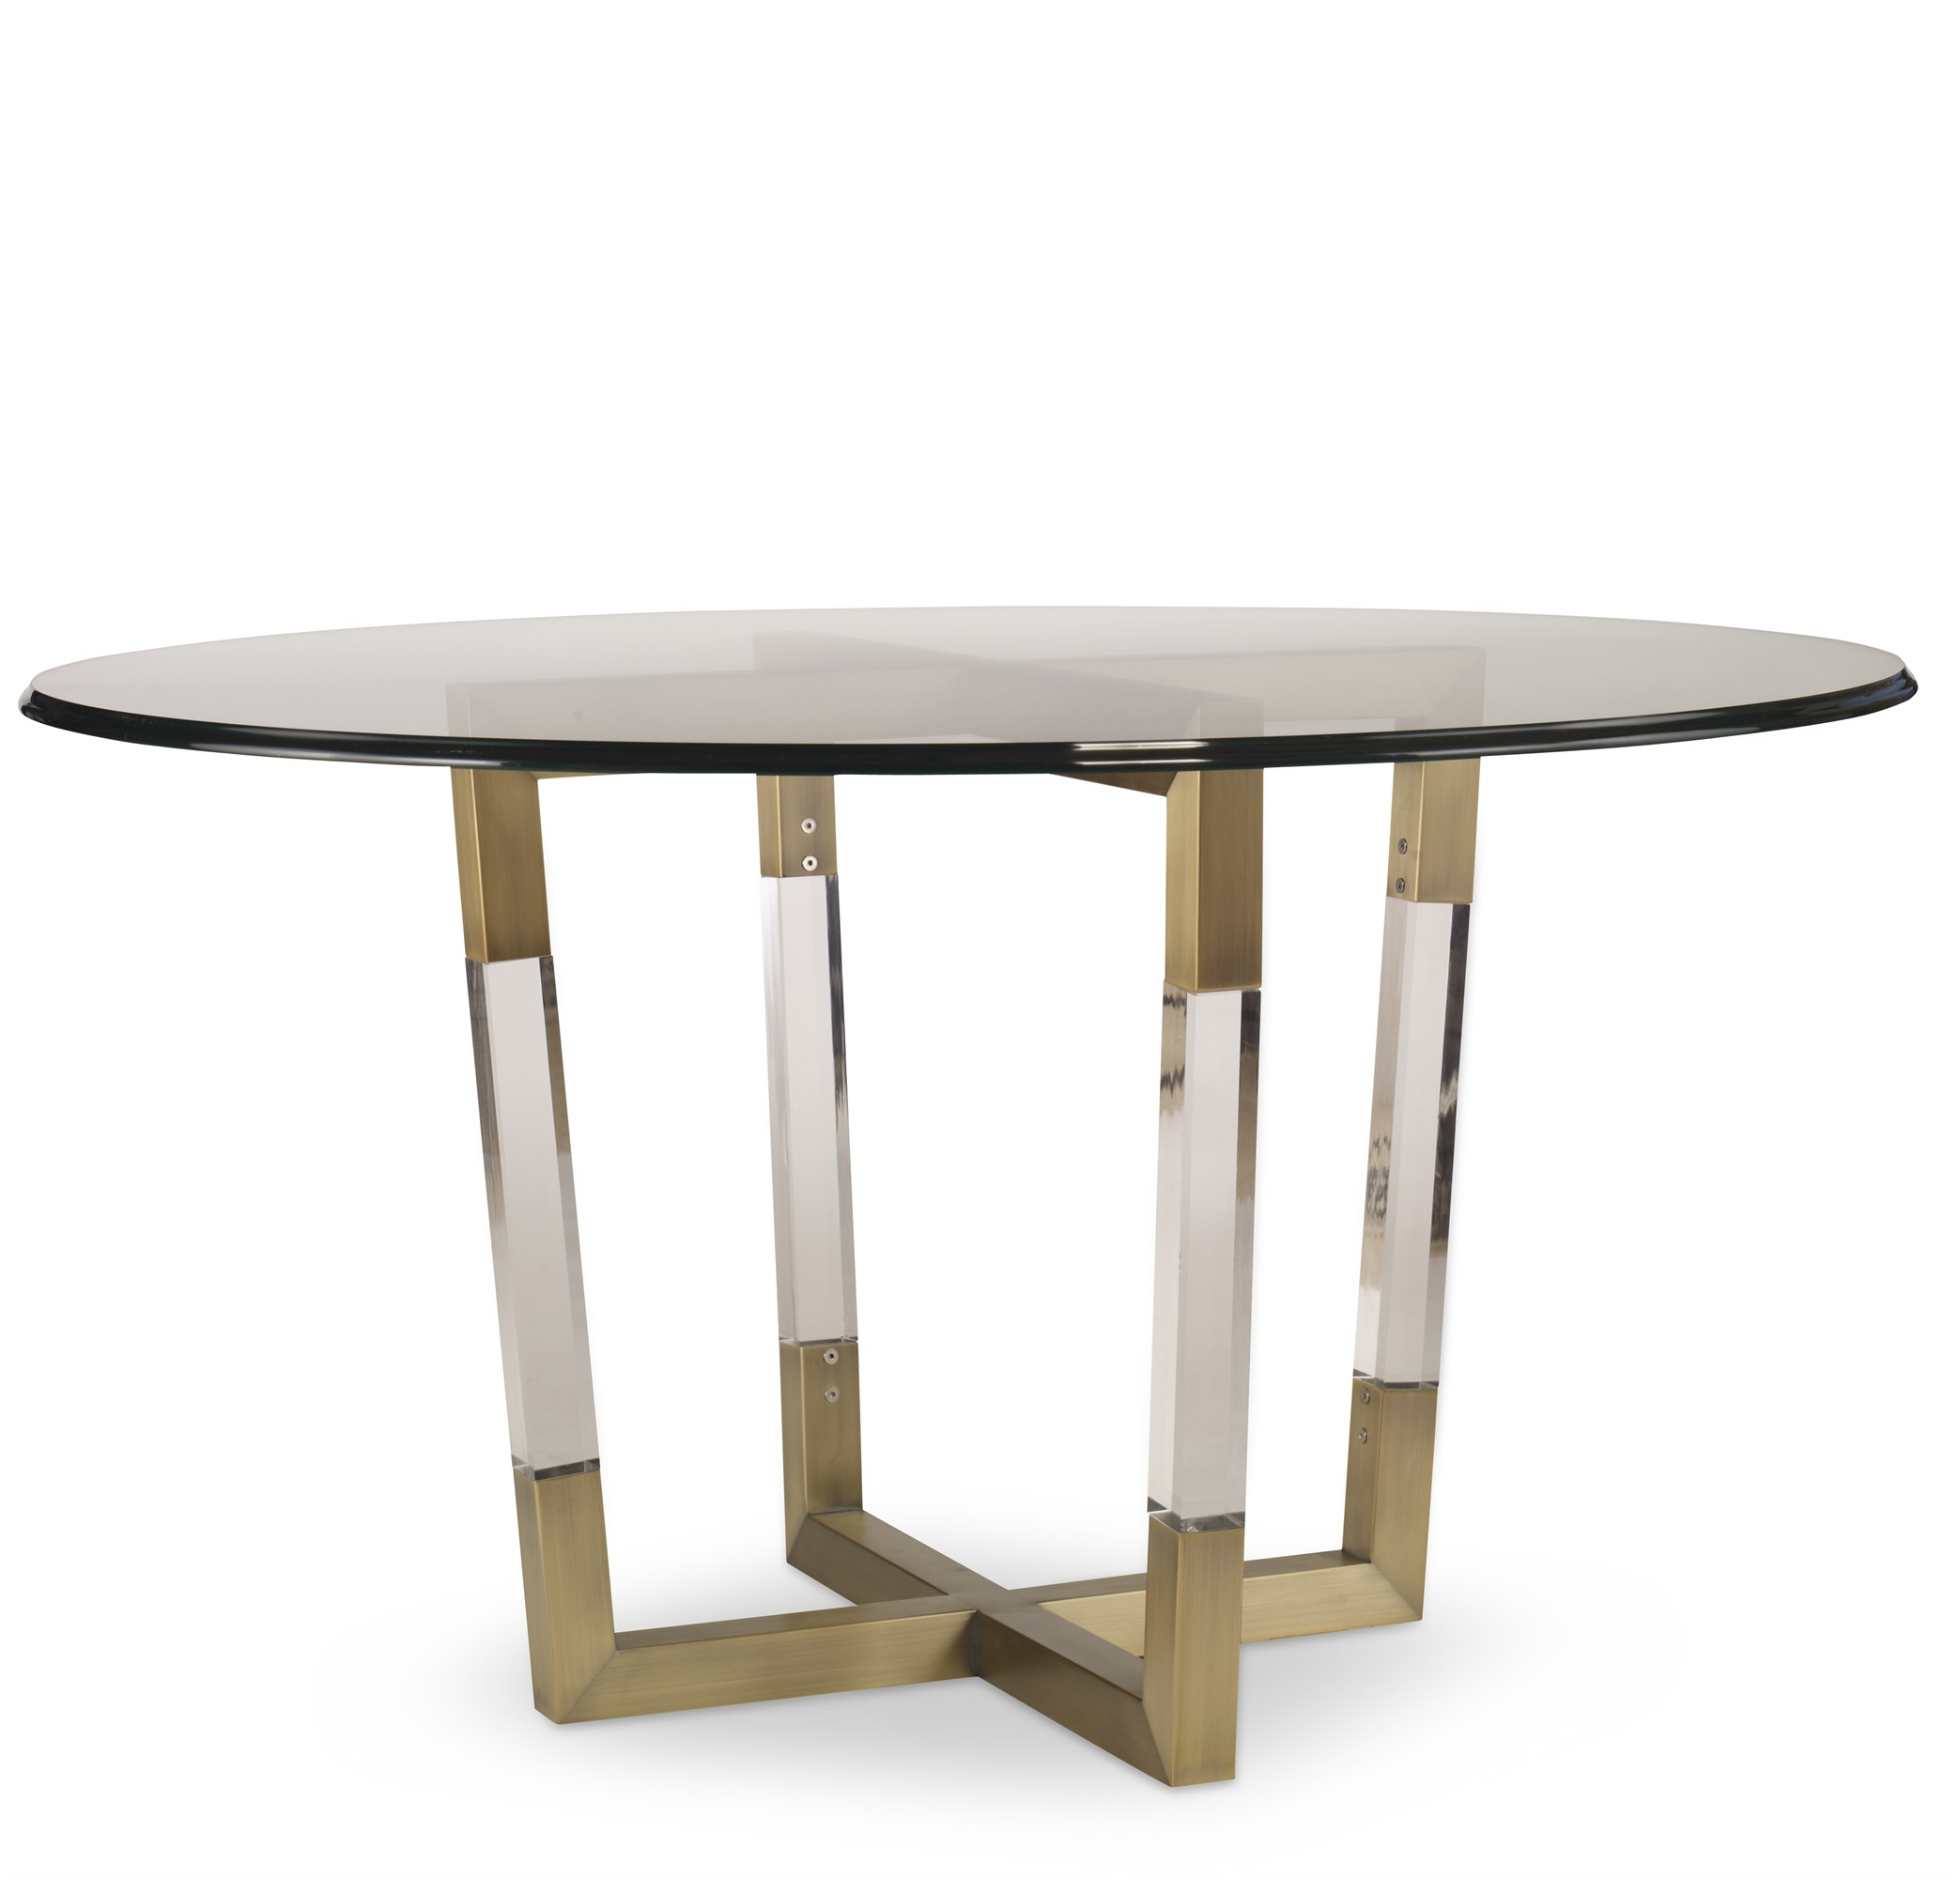 Metal/Acrylic Dining Table Base For Glass Tops